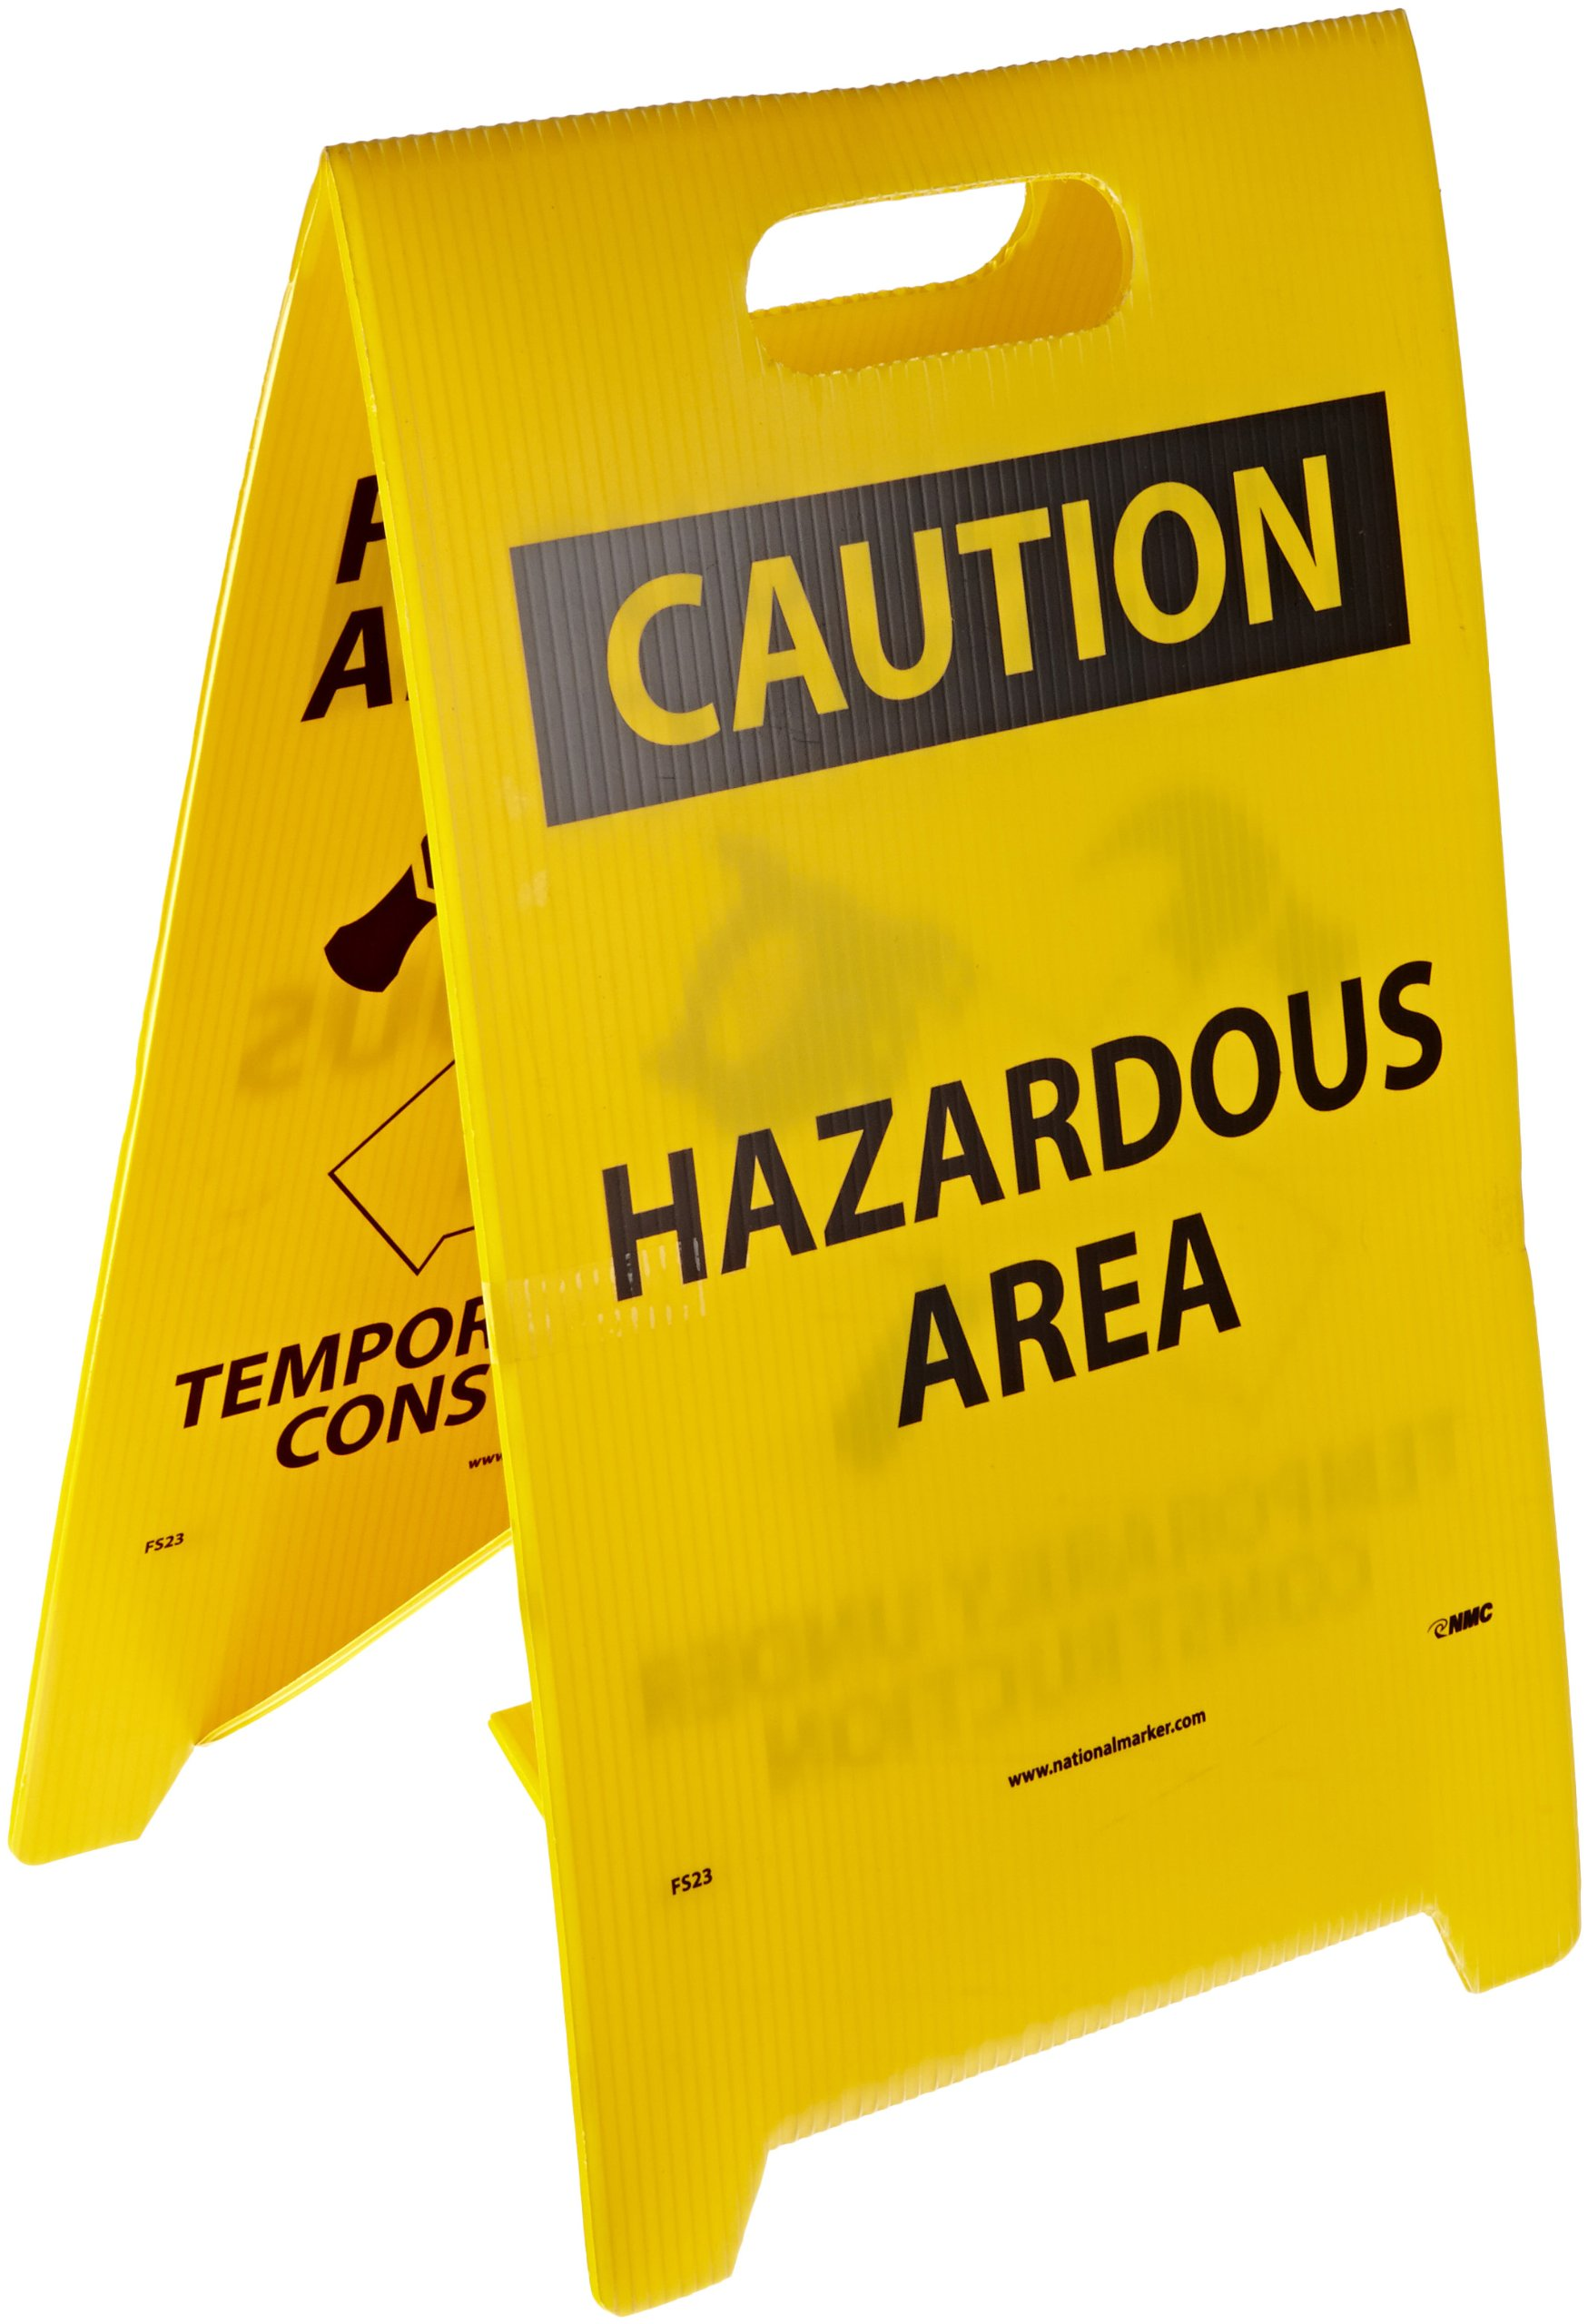 NMC FS23 Double Sided Floor Sign, Legend ''PARDON OUR APPEARANCE TEMPORARILY UNDER CONSTRUCTION CAUTION HAZARDOUS AREA'' with Graphic, 12'' Length x 20'' Height, Coroplast, Black on Yellow